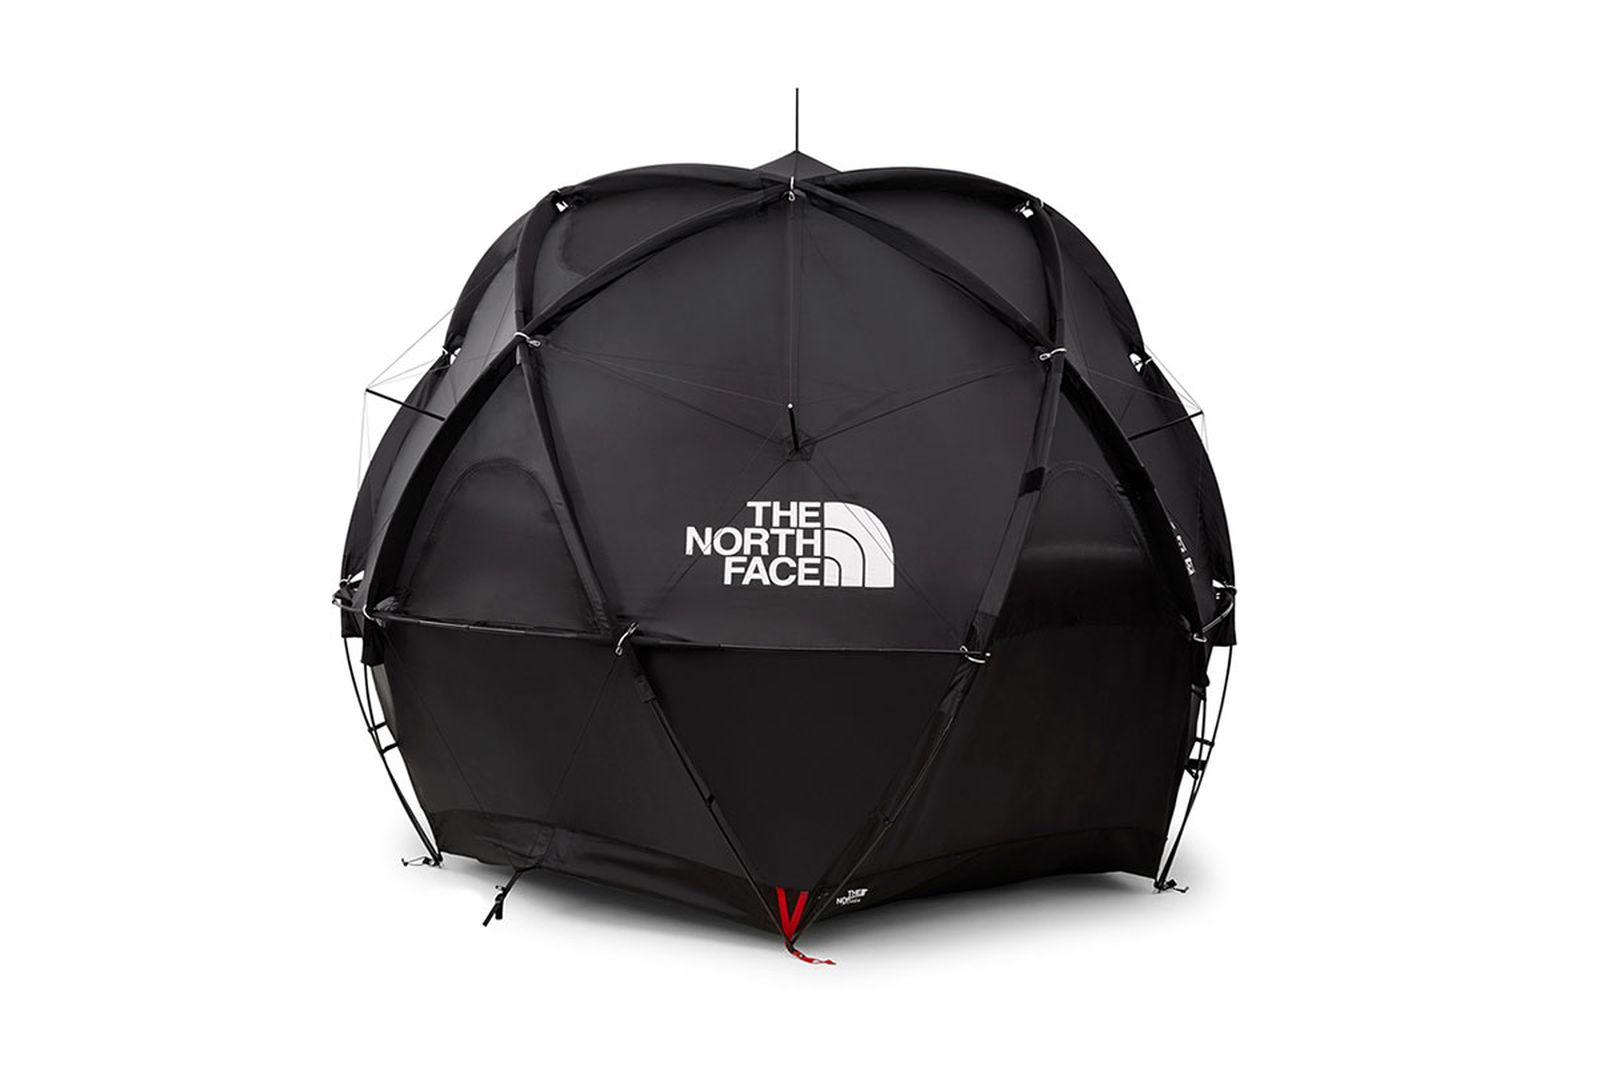 the north face x dover street market geodome tent